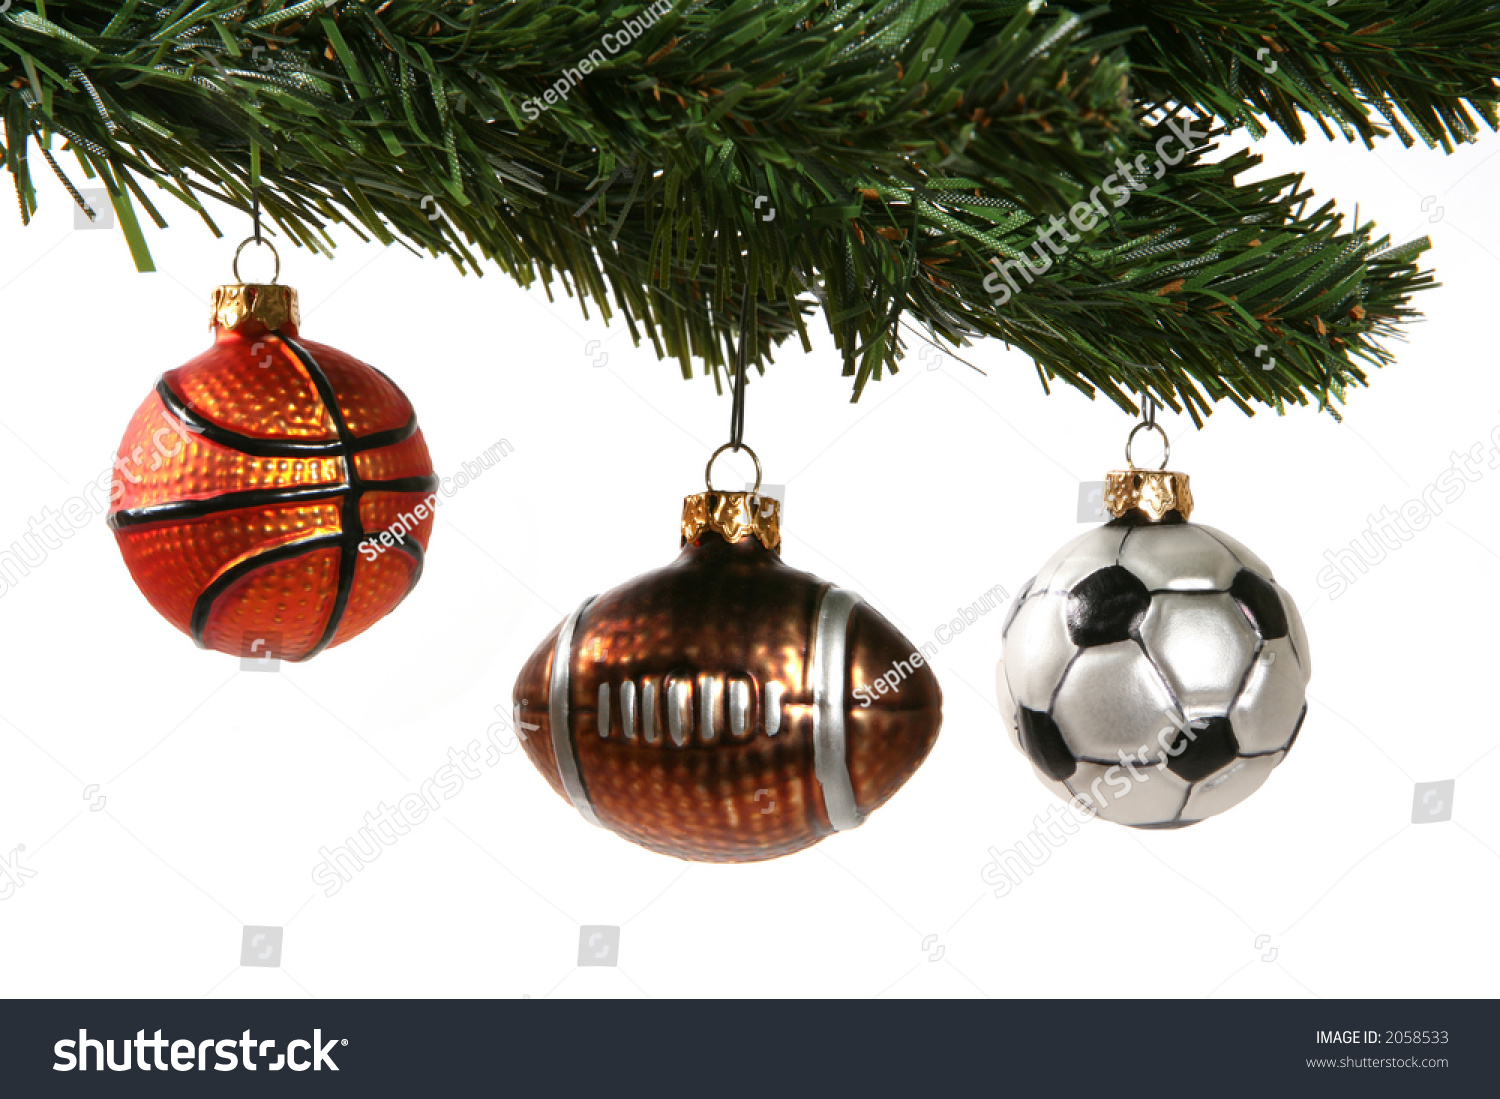 Soccer ornaments - Save To A Lightbox